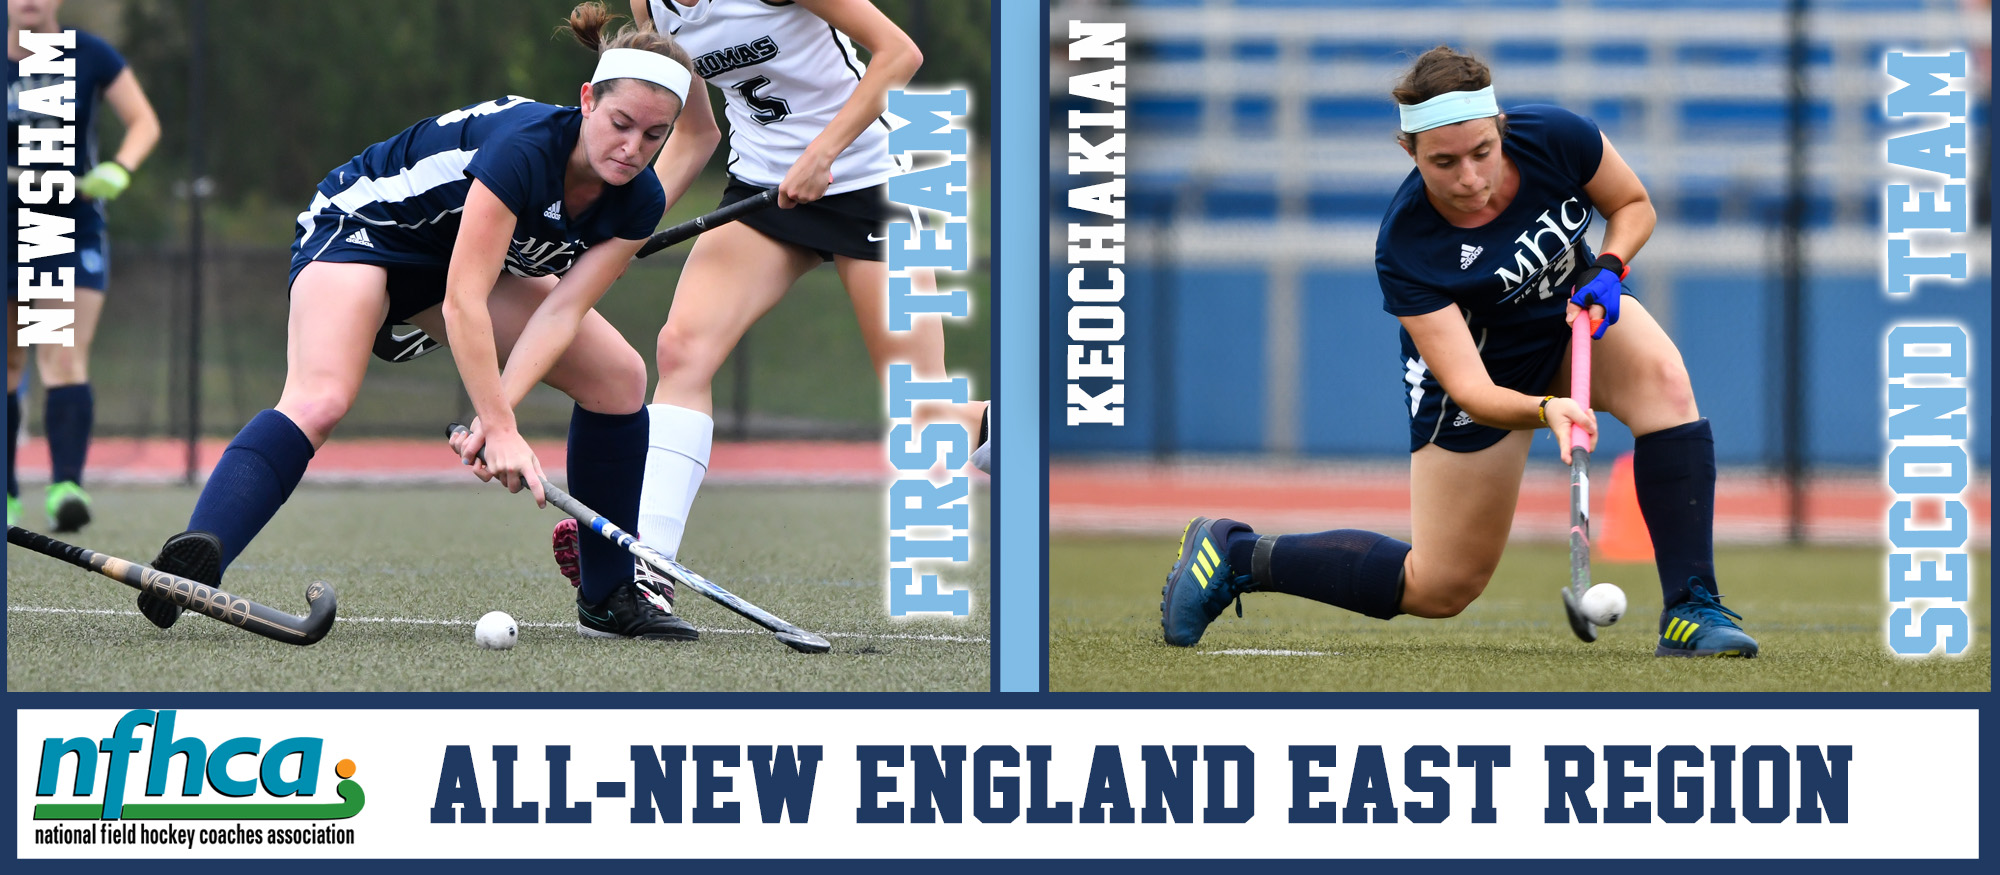 Graphic promoting the 2018 All-Region Field Hockey selections, Colby Newsham and Mirjam Keochakian